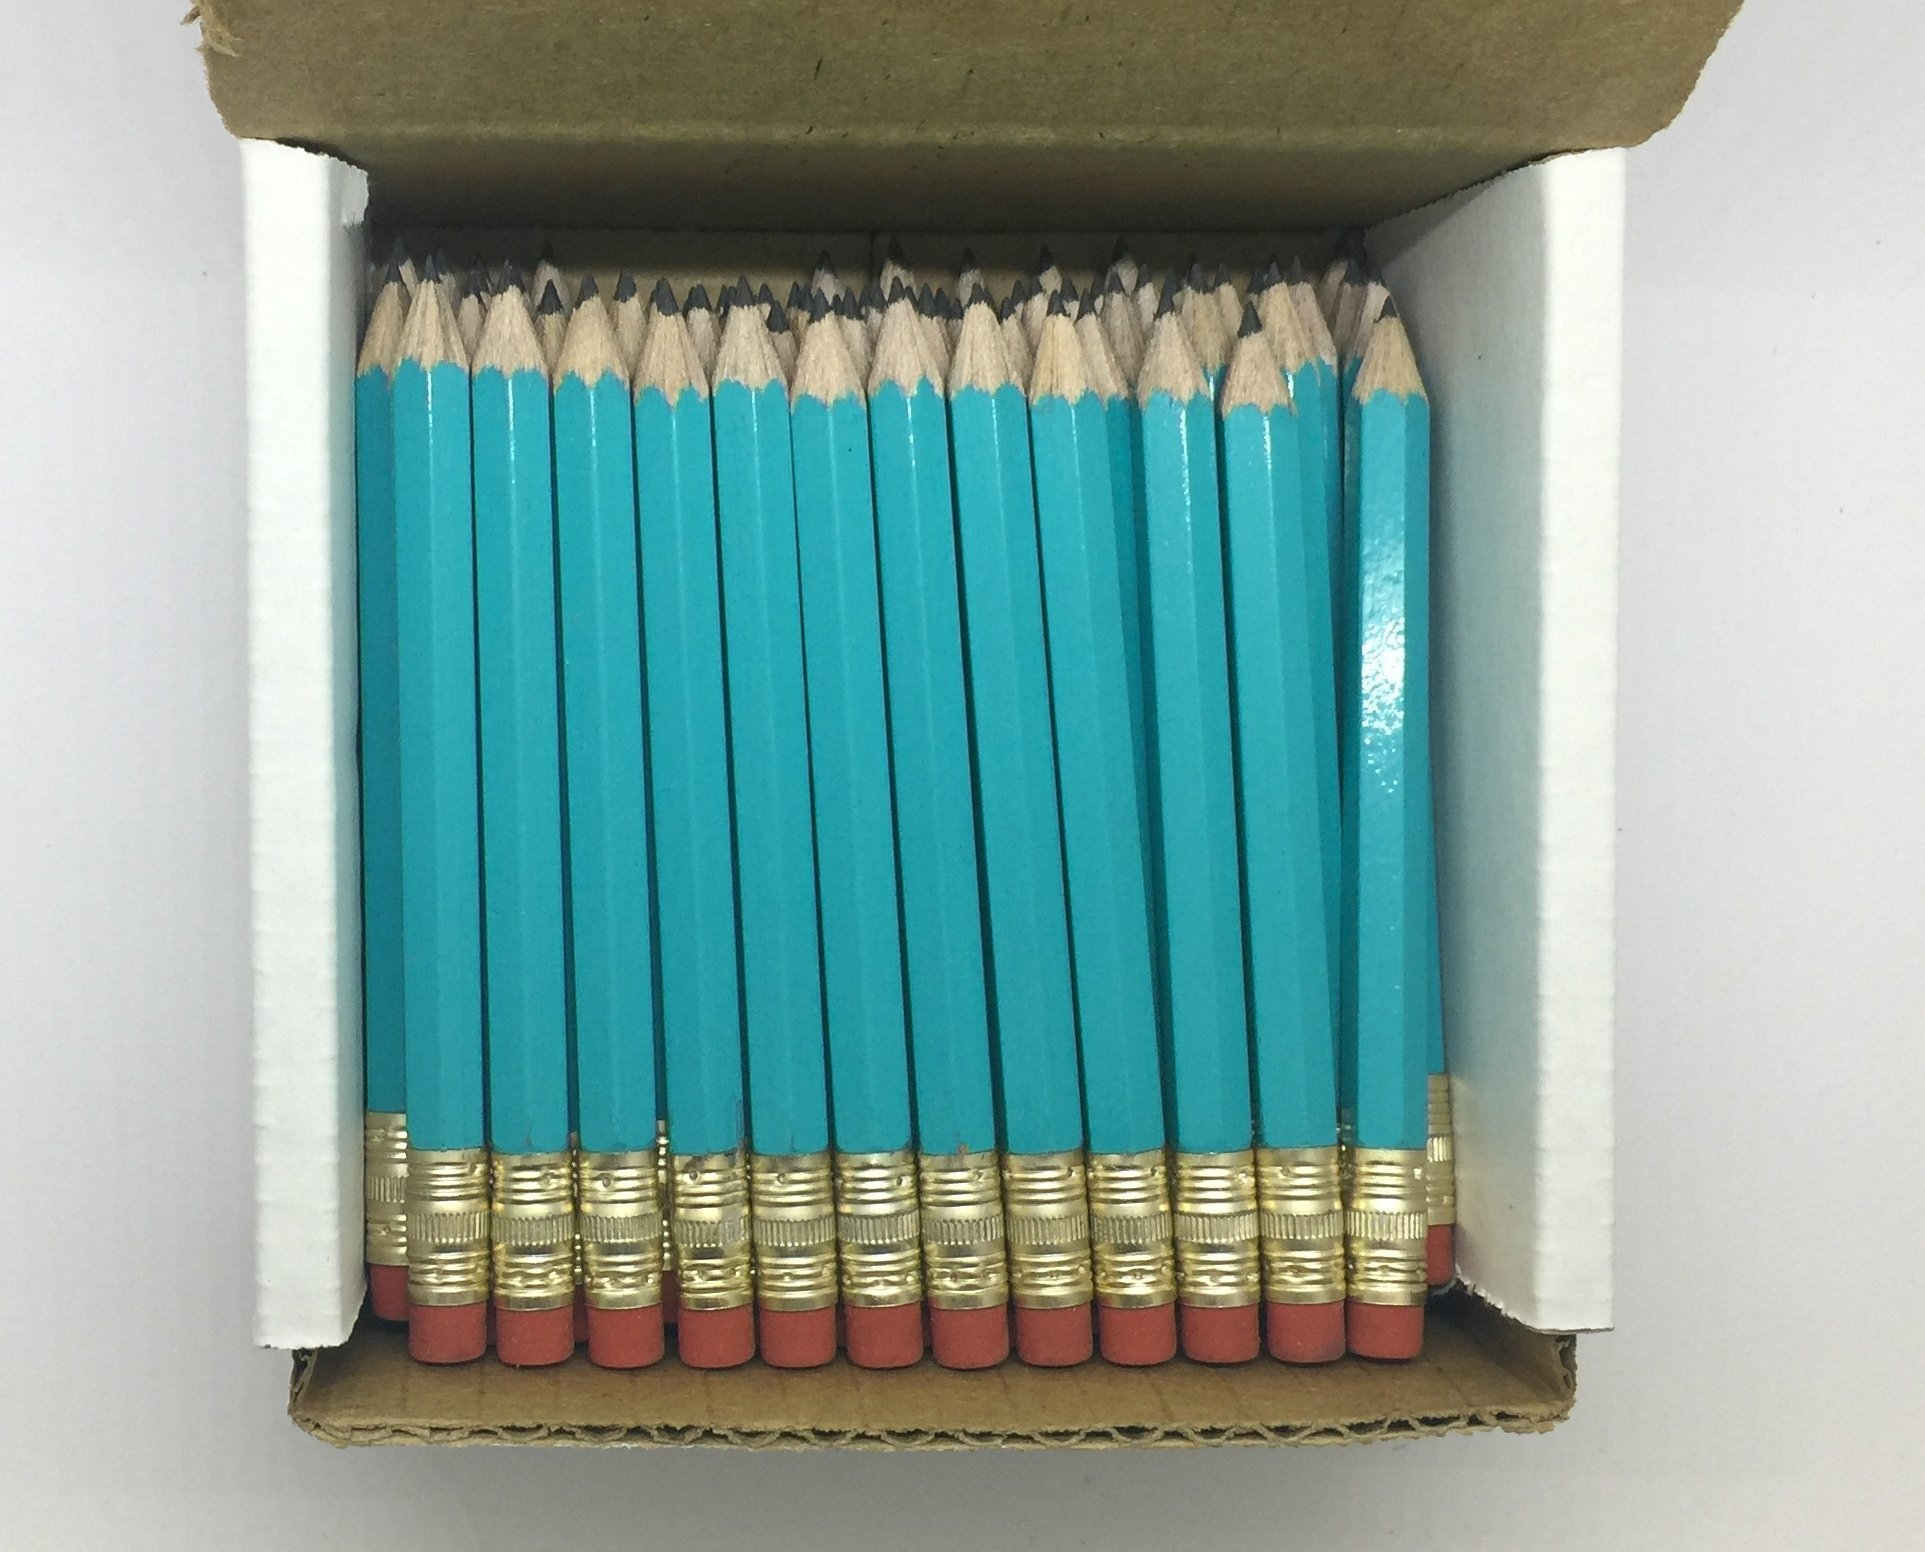 Half Pencils with Eraser - Golf, Classroom, Pew, Short, Mini - Hexagon, Sharpened, Non Toxic, #2 Pencil, Color - Light Turquoise, (Box of 48) Golf Pocket Pencils by Express Pencils